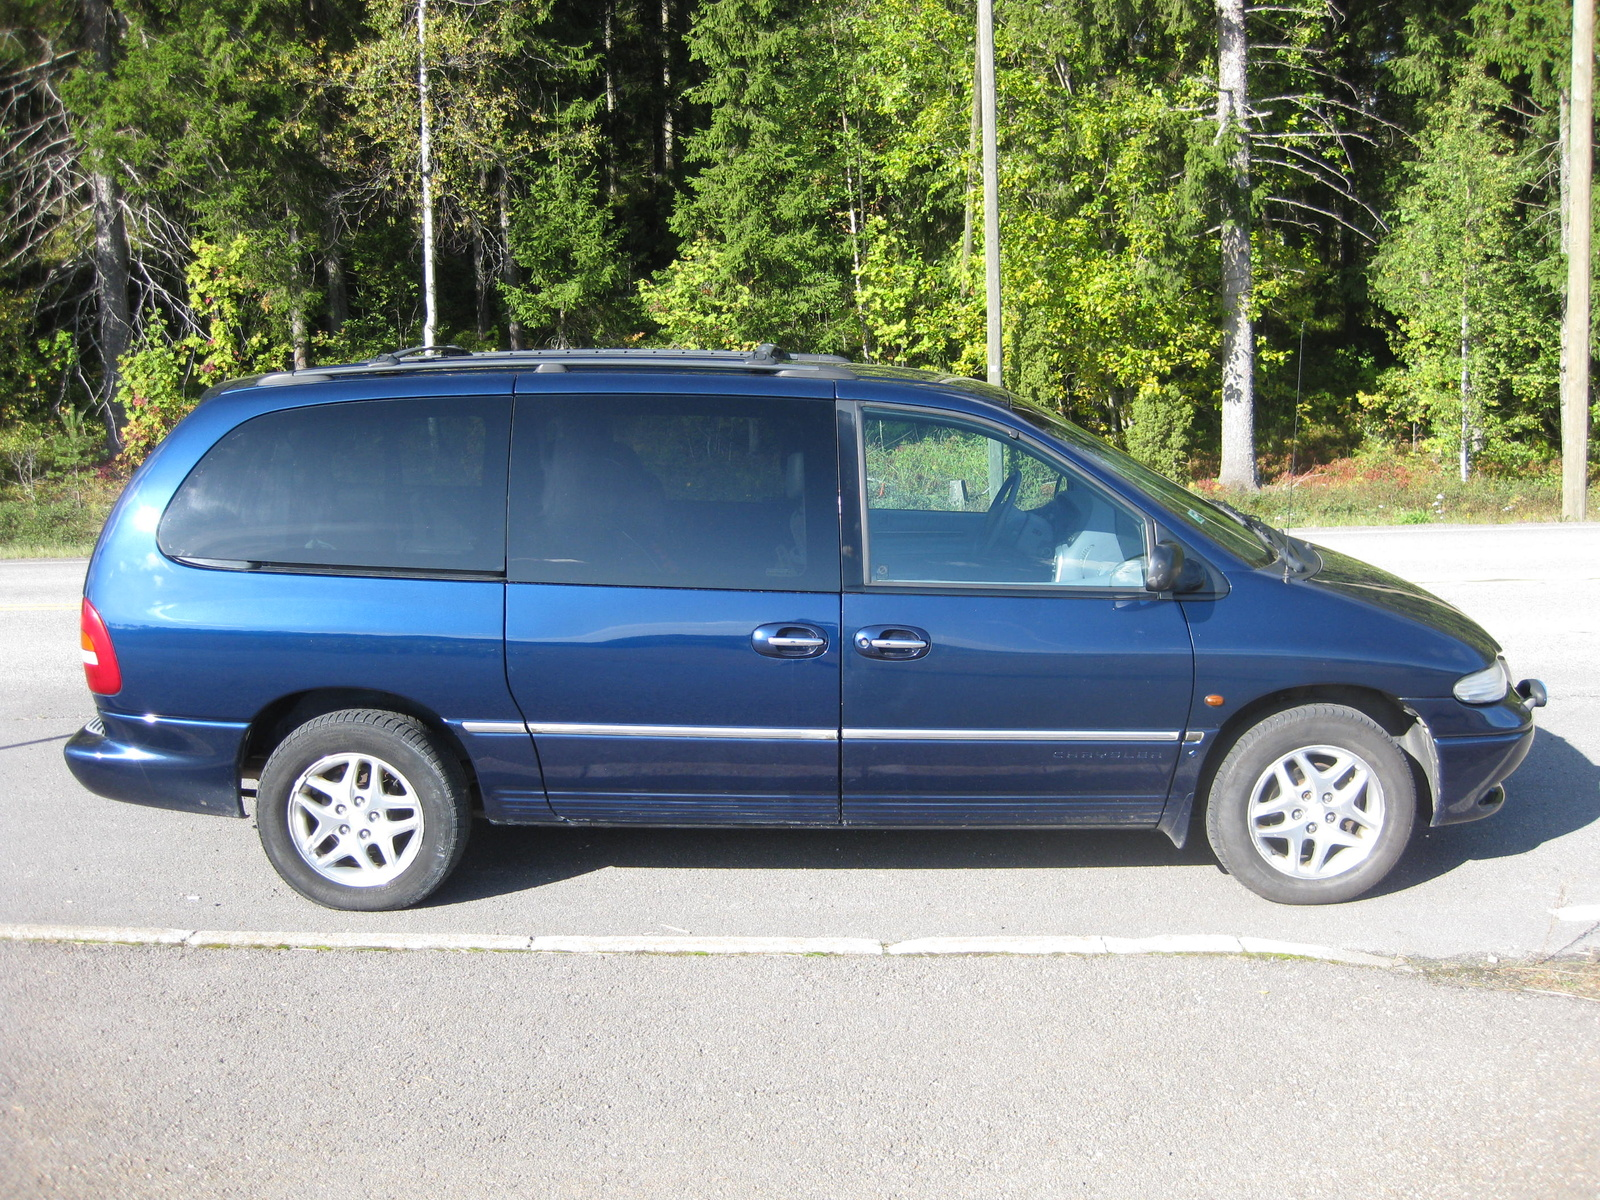 2000 Chrysler Grand Voyager Information And Photos Zombiedrive Tuning 11